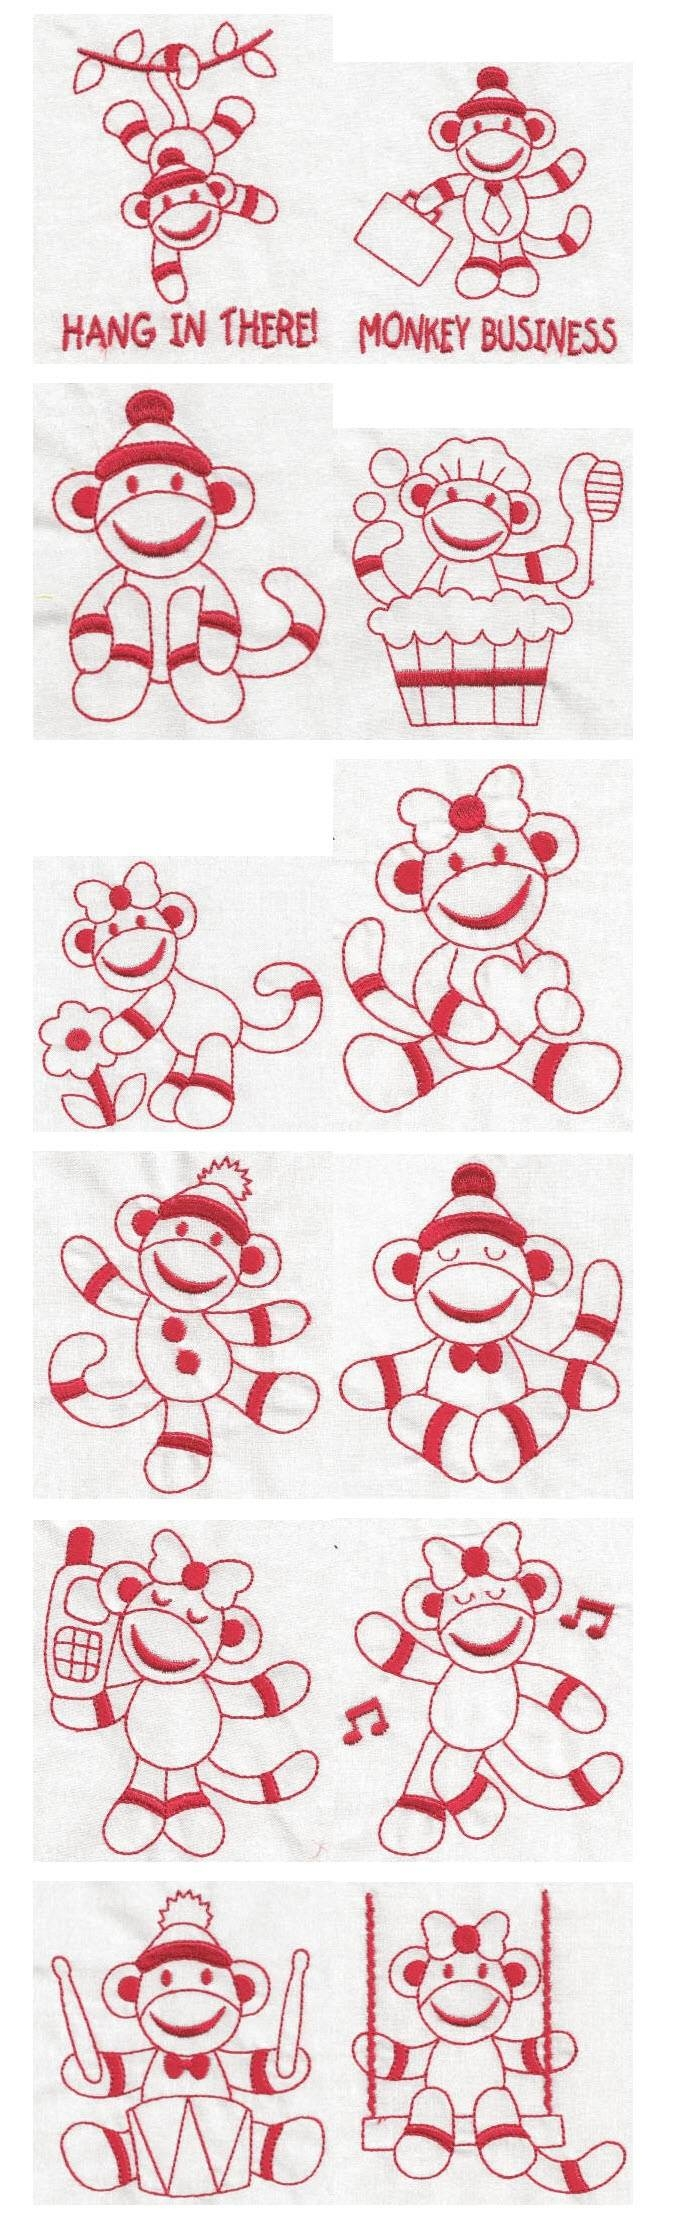 23 Best Sock Monkey Fill Stitch Images On Pinterest | Sock Monkeys Intended For Current Sock Monkey Wall Art (View 26 of 30)